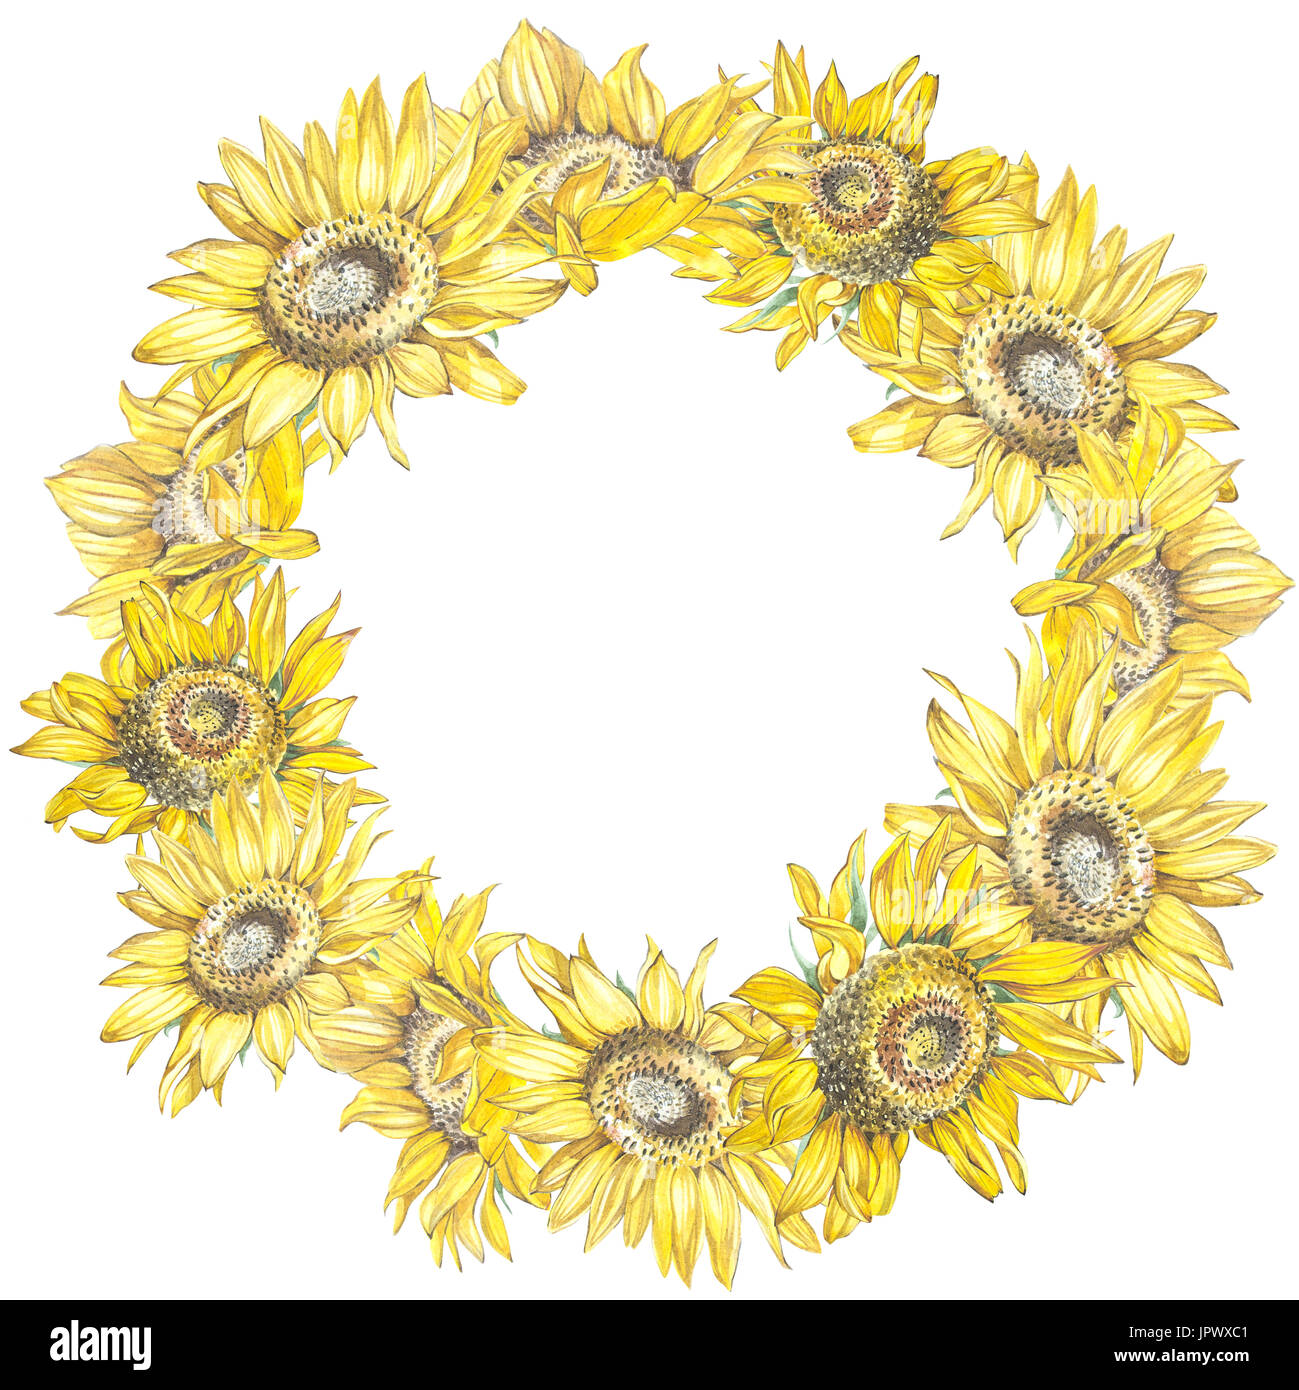 Illustration of a sunflowers wreath in watercolor style wreath in watercolor style beautiful round decor for invitations greeting cards posters kristyandbryce Images